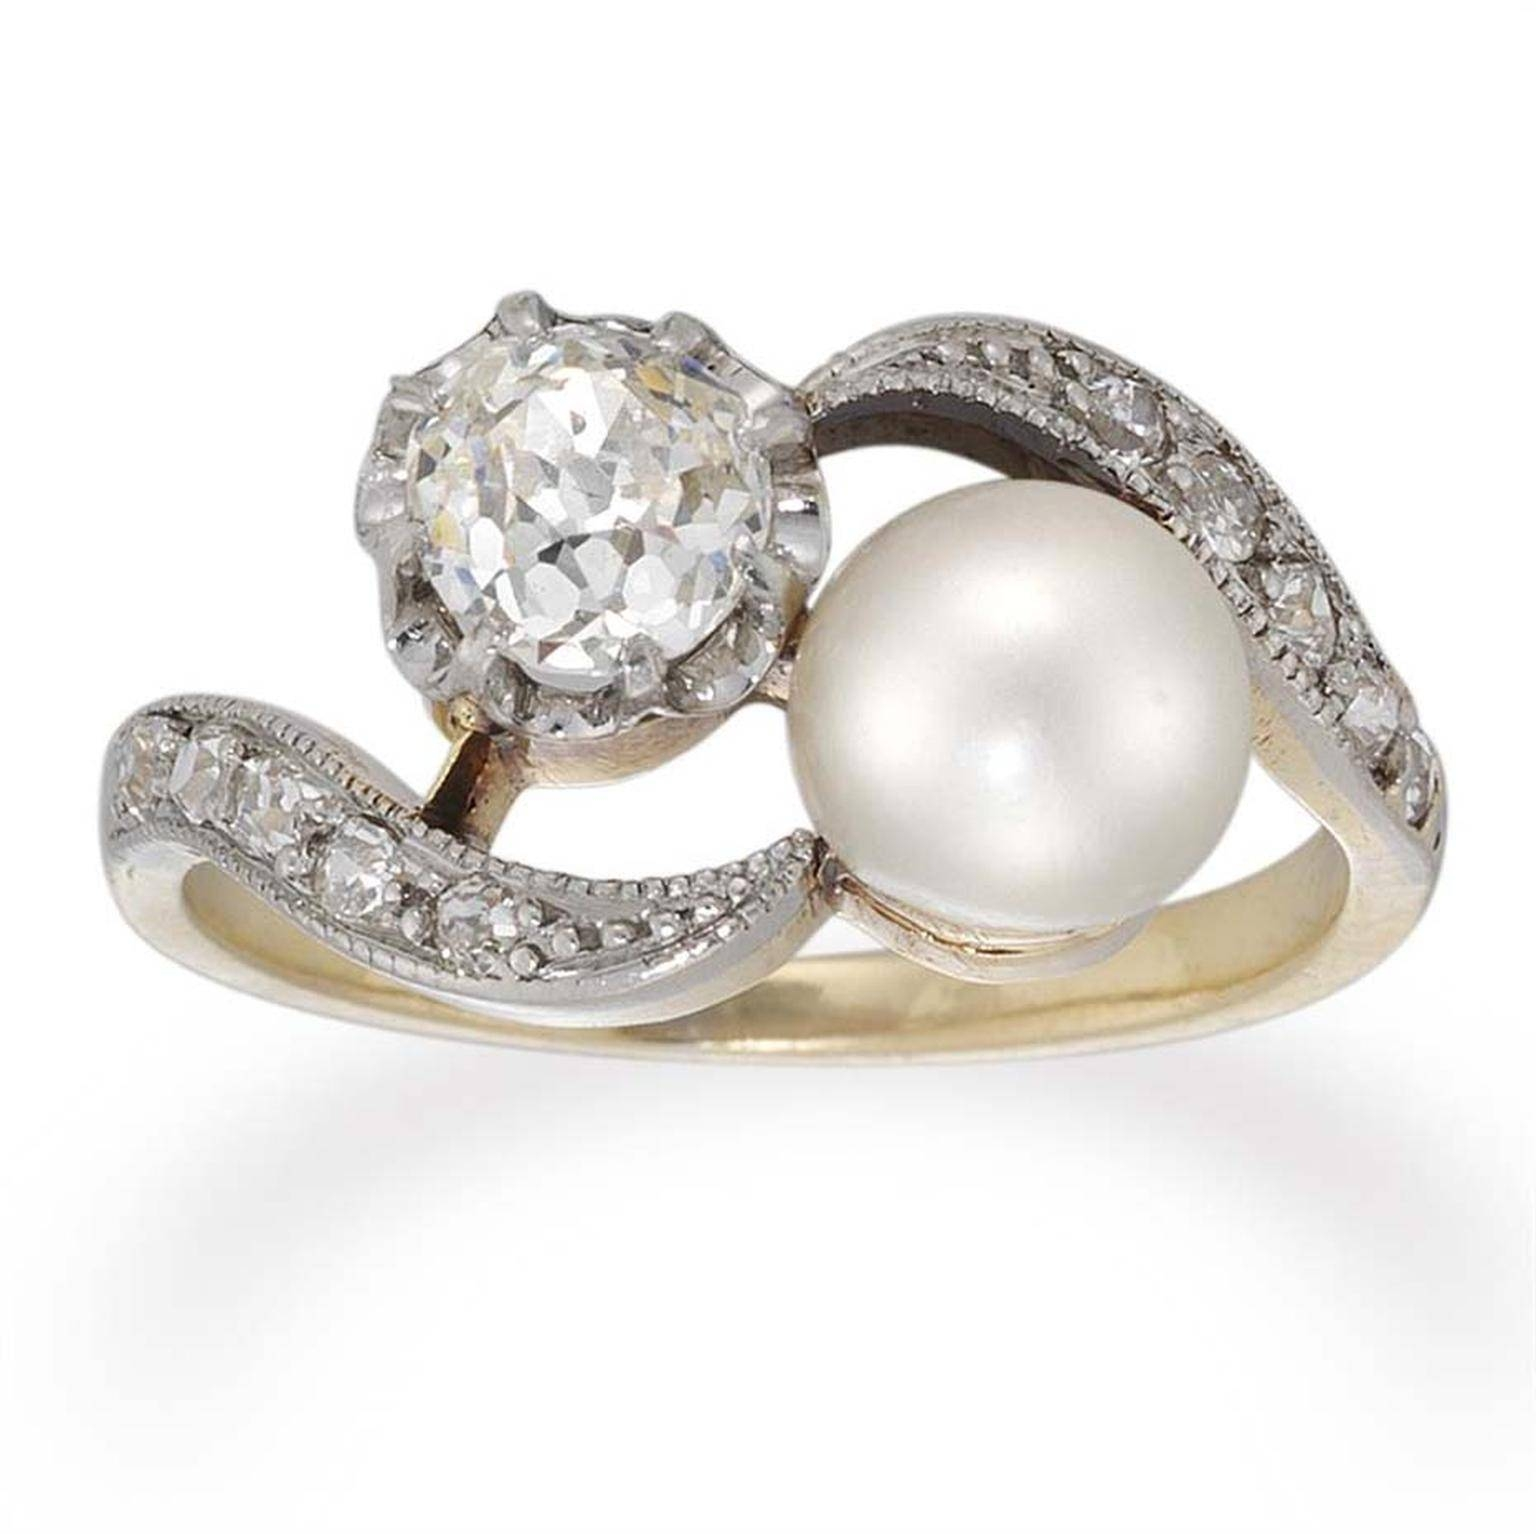 Edwardian Engagement Rings: Opulent And Feminine | The Jewellery For Feminine Engagement Rings (View 6 of 15)